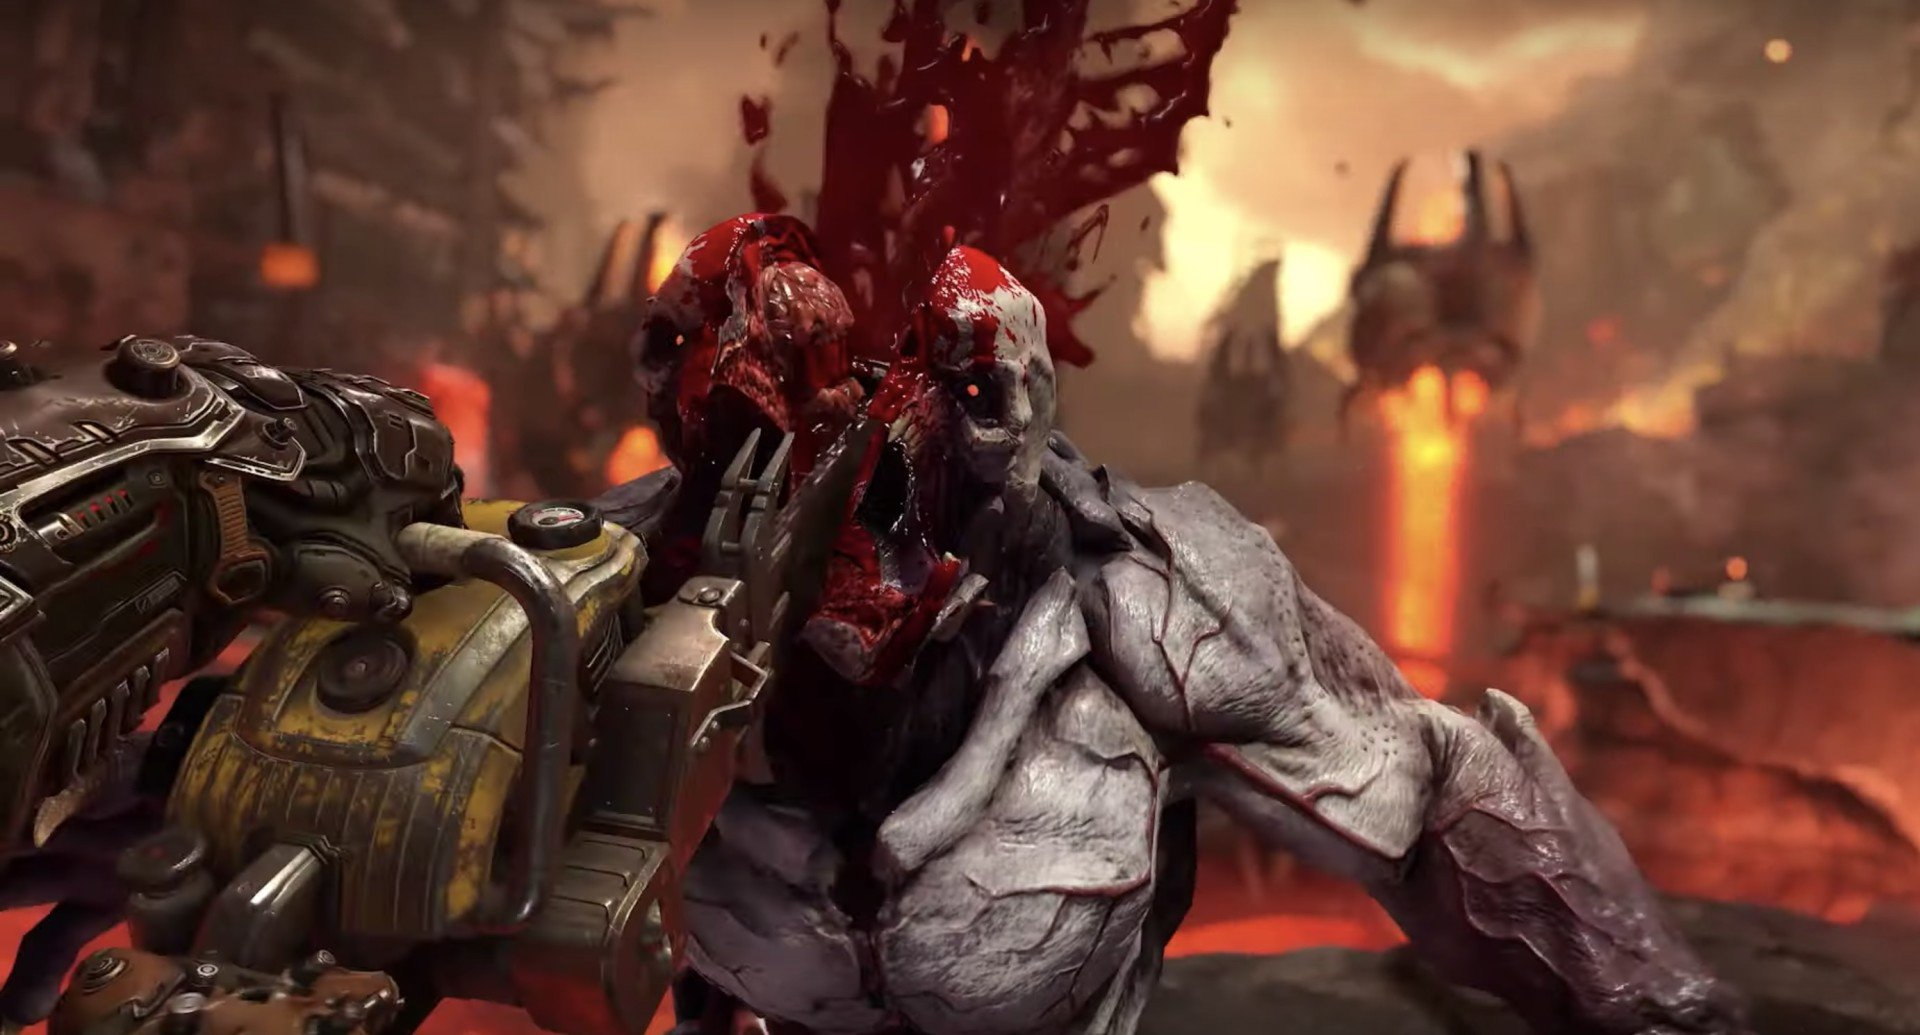 Will Doom Eternal have co-op or splitscreen?